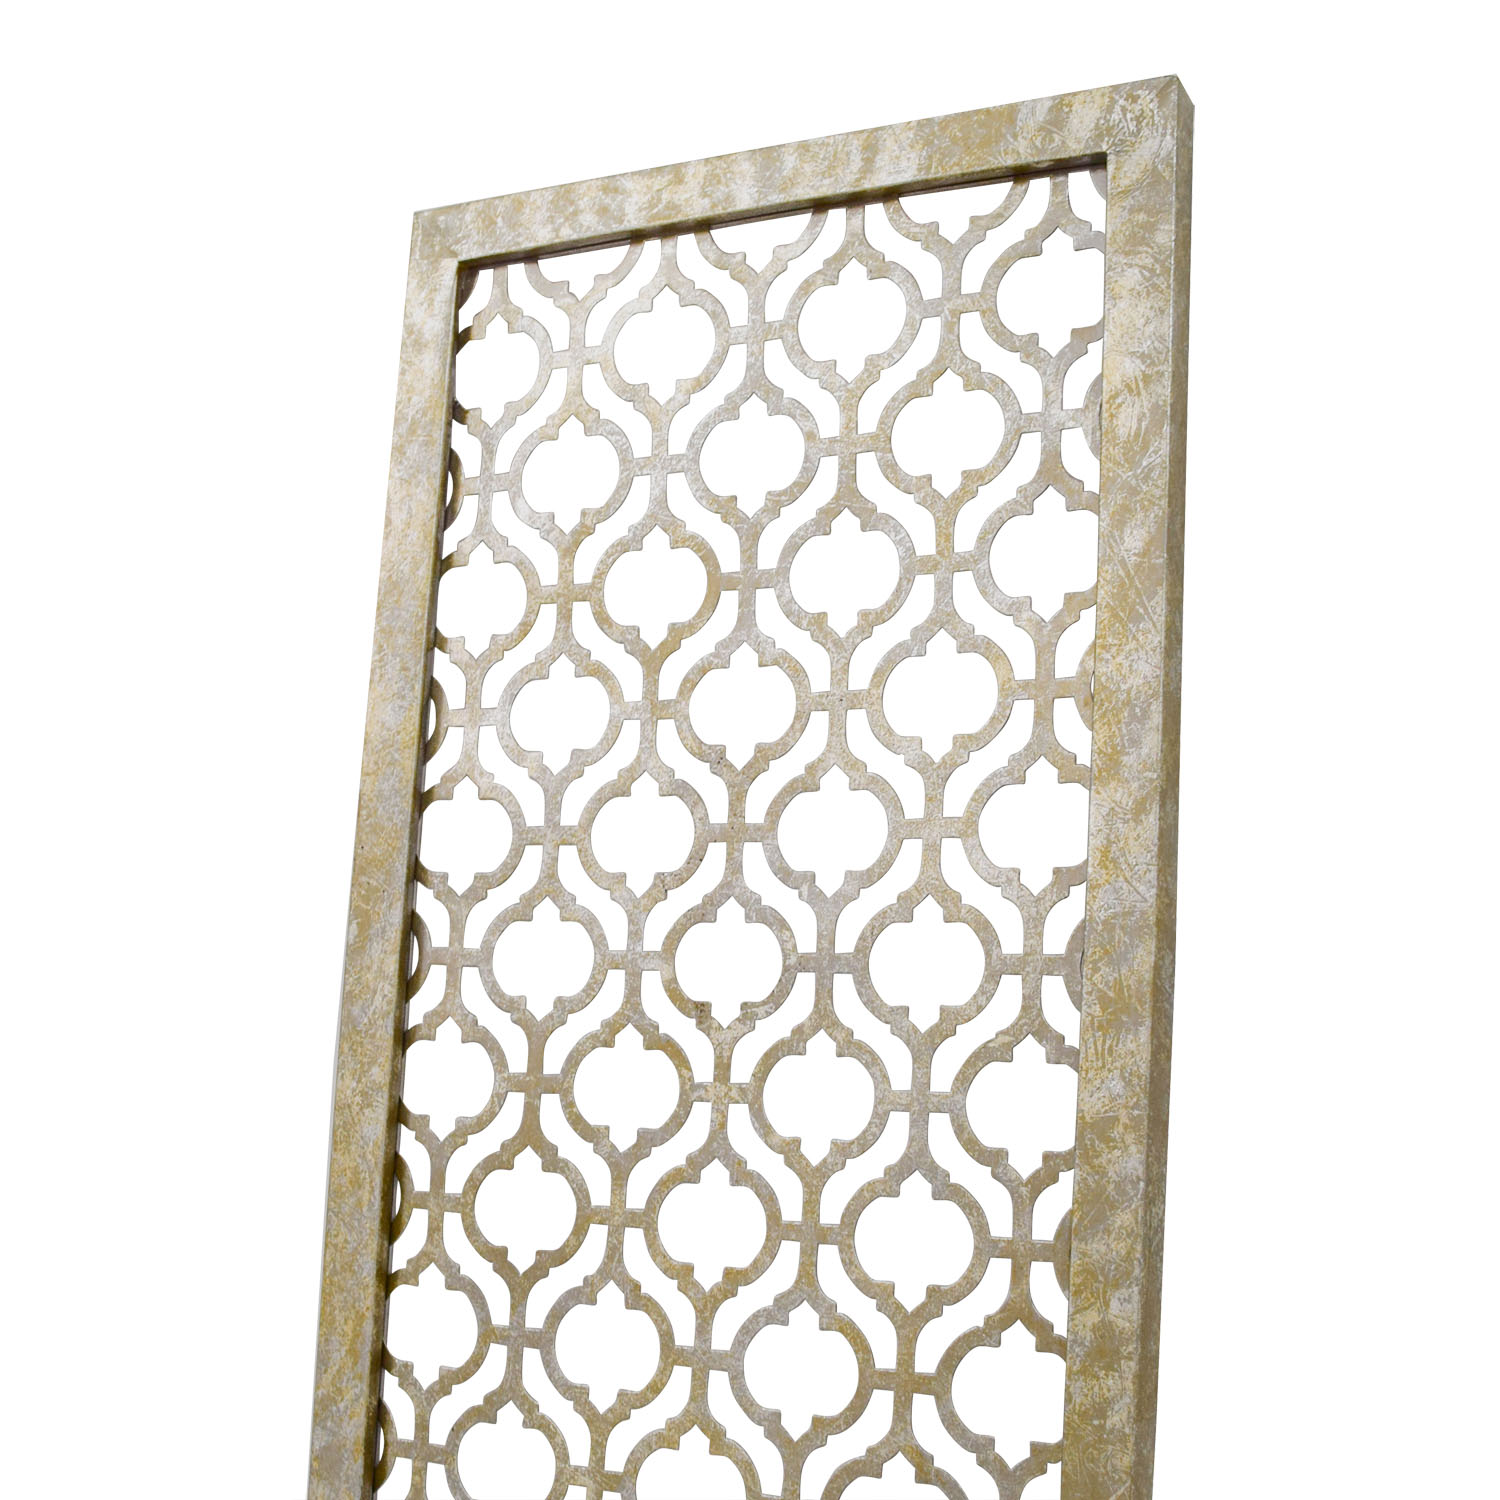 58 off pier 1 imports pier 1 imports trellis metal wall panel decor. Black Bedroom Furniture Sets. Home Design Ideas